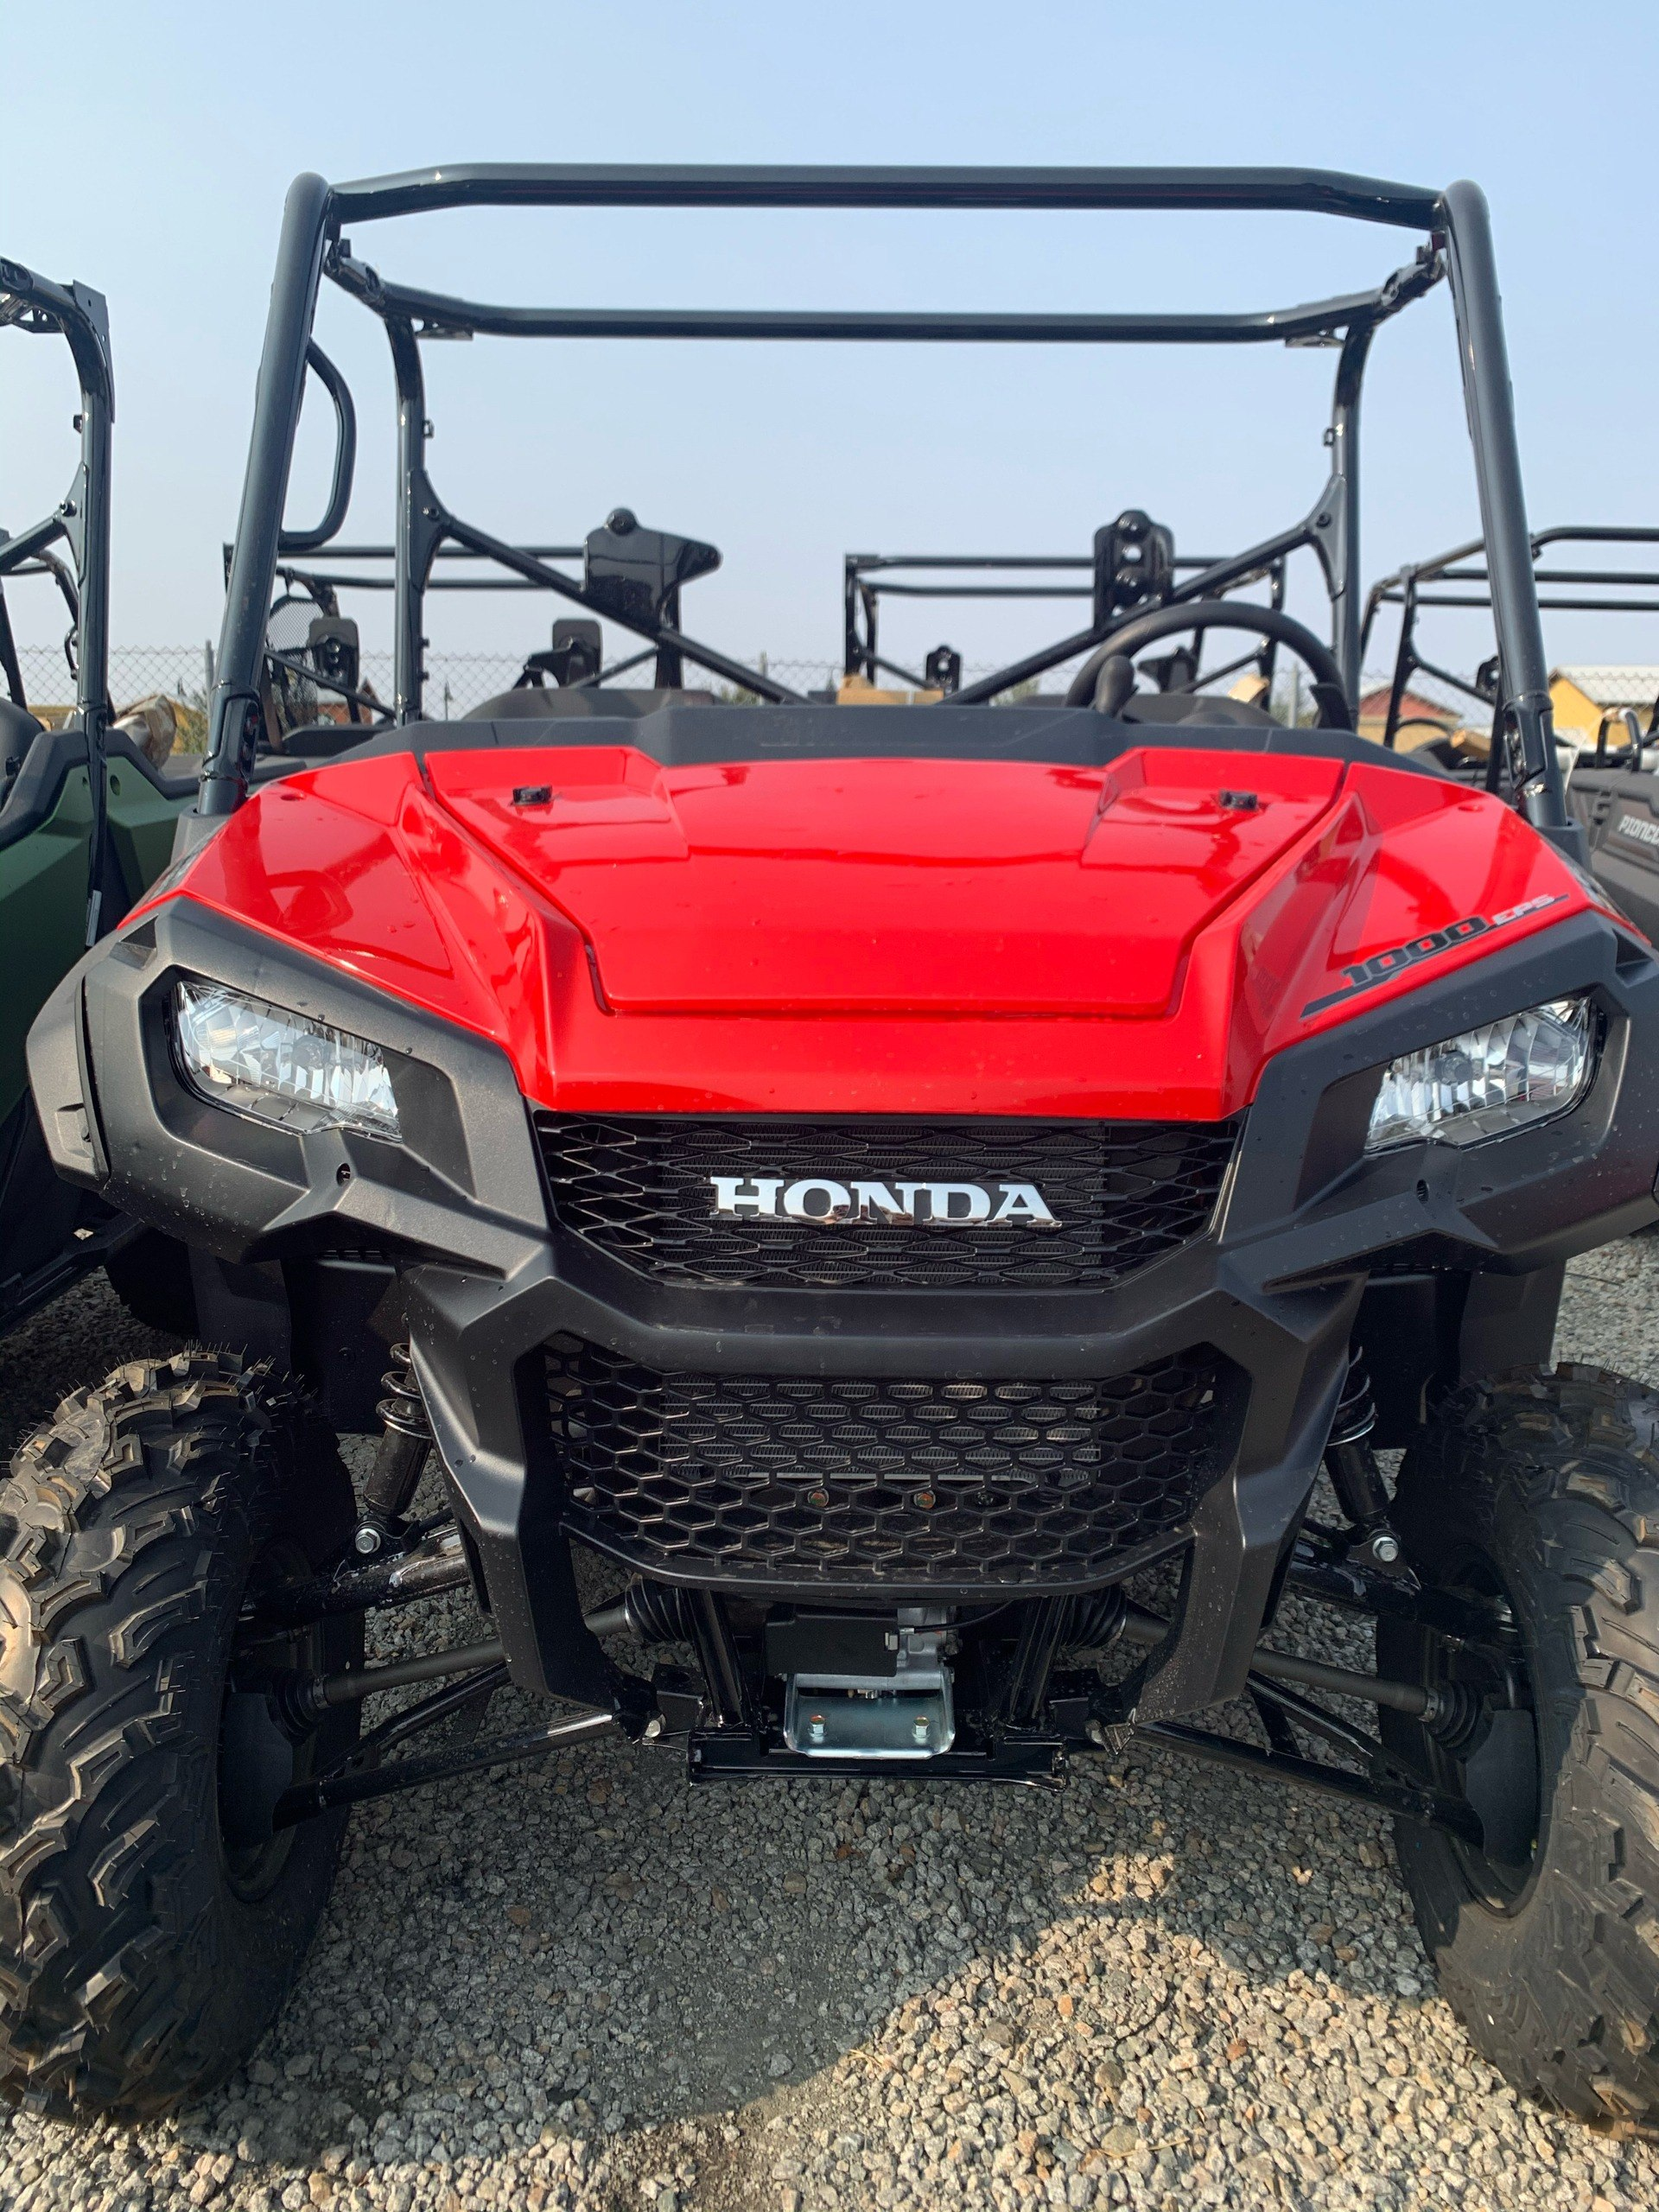 2021 Honda Pioneer 1000 in Paso Robles, California - Photo 1